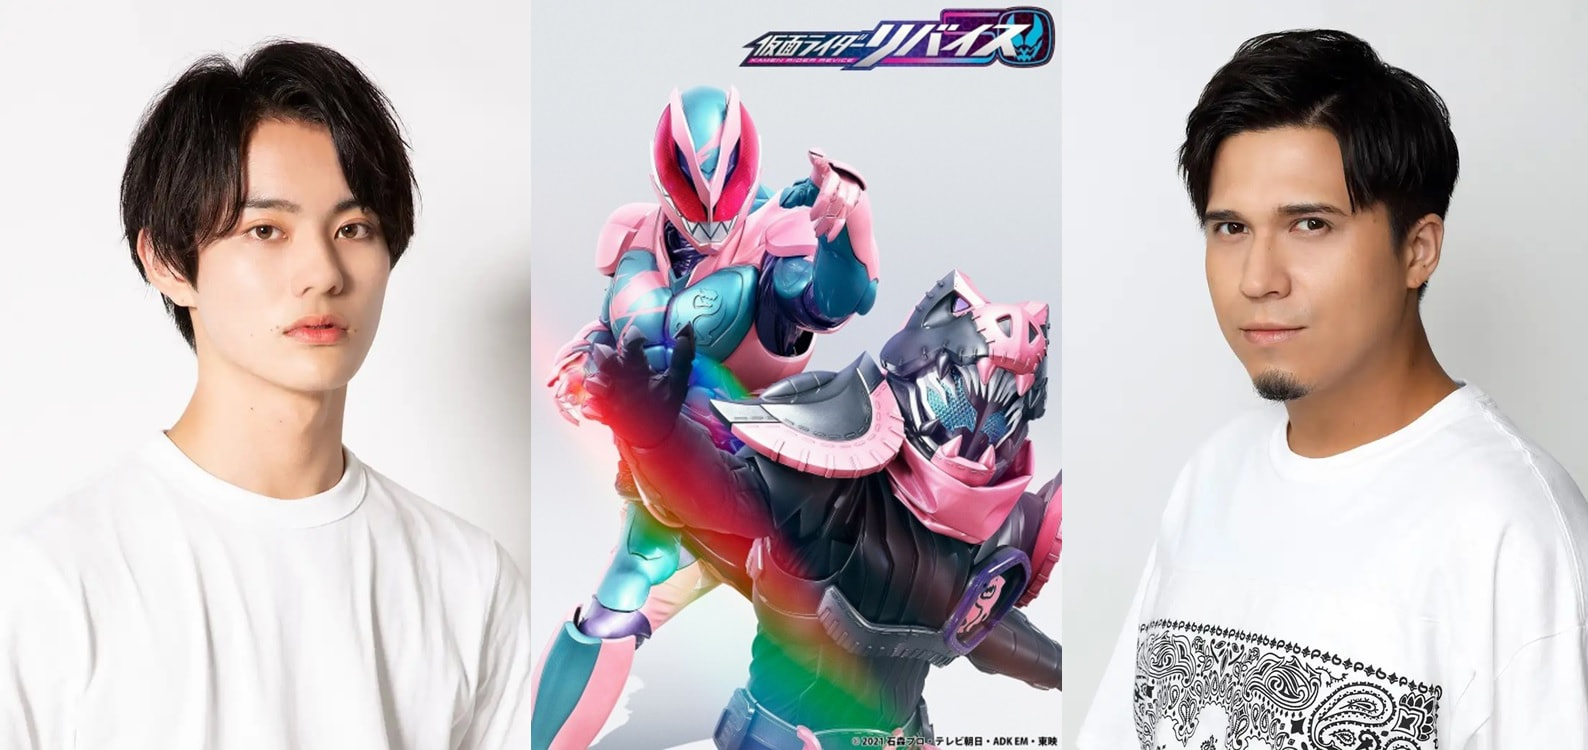 Kamen Rider Revice Story & Crew Details Officially Revealed!